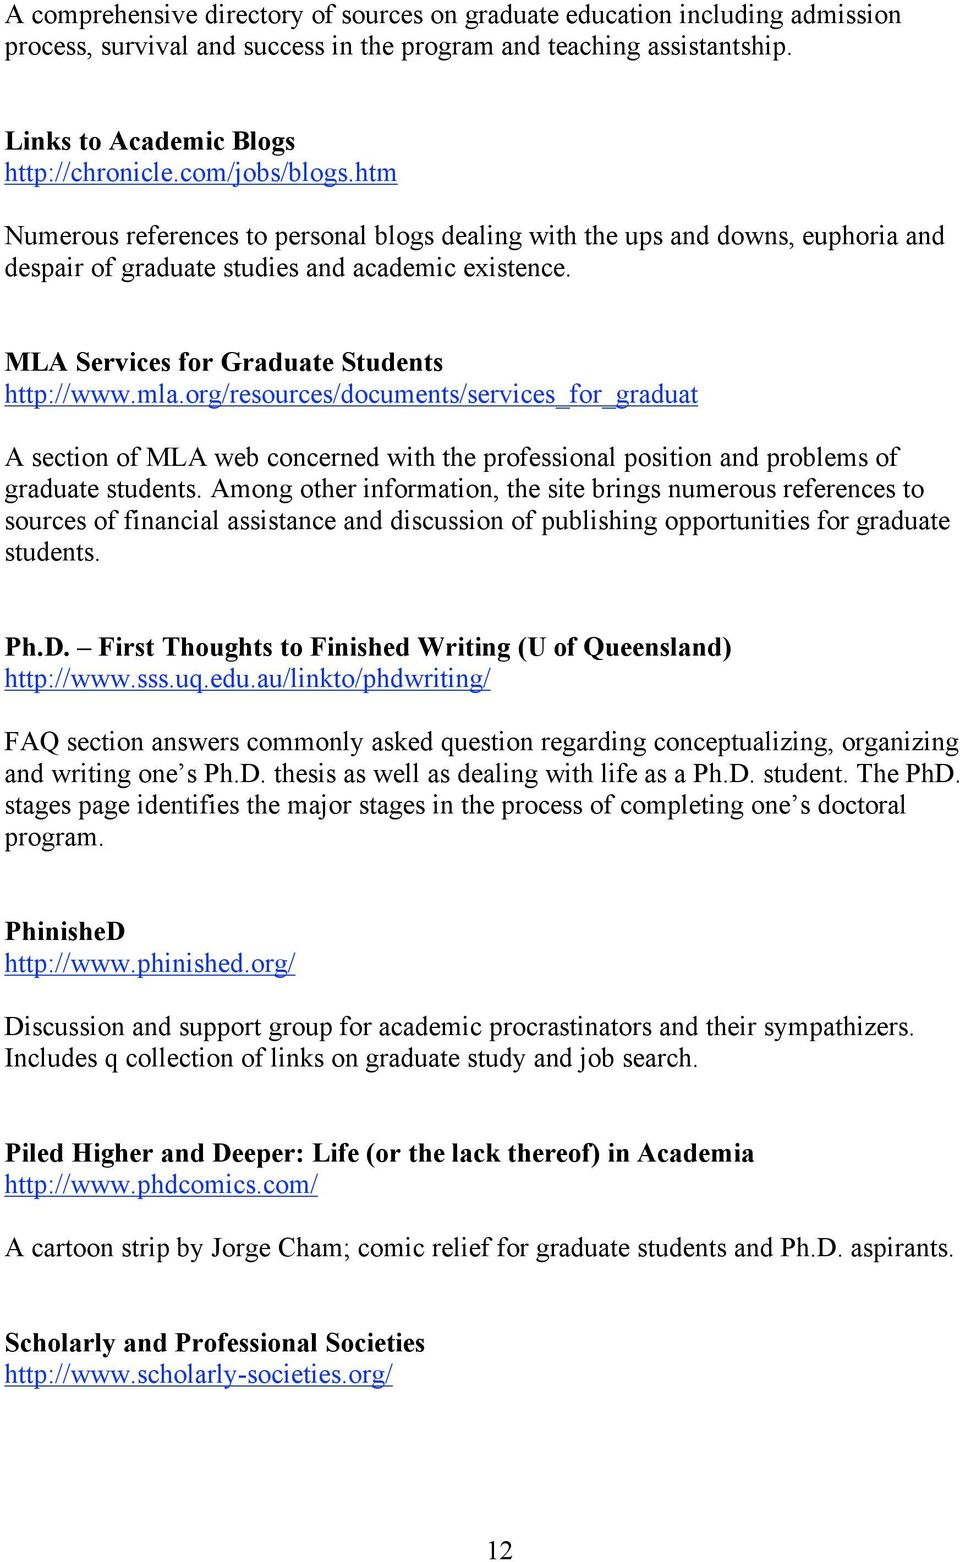 mla.org/resources/documents/services_for_graduat A section of MLA web concerned with the professional position and problems of graduate students.